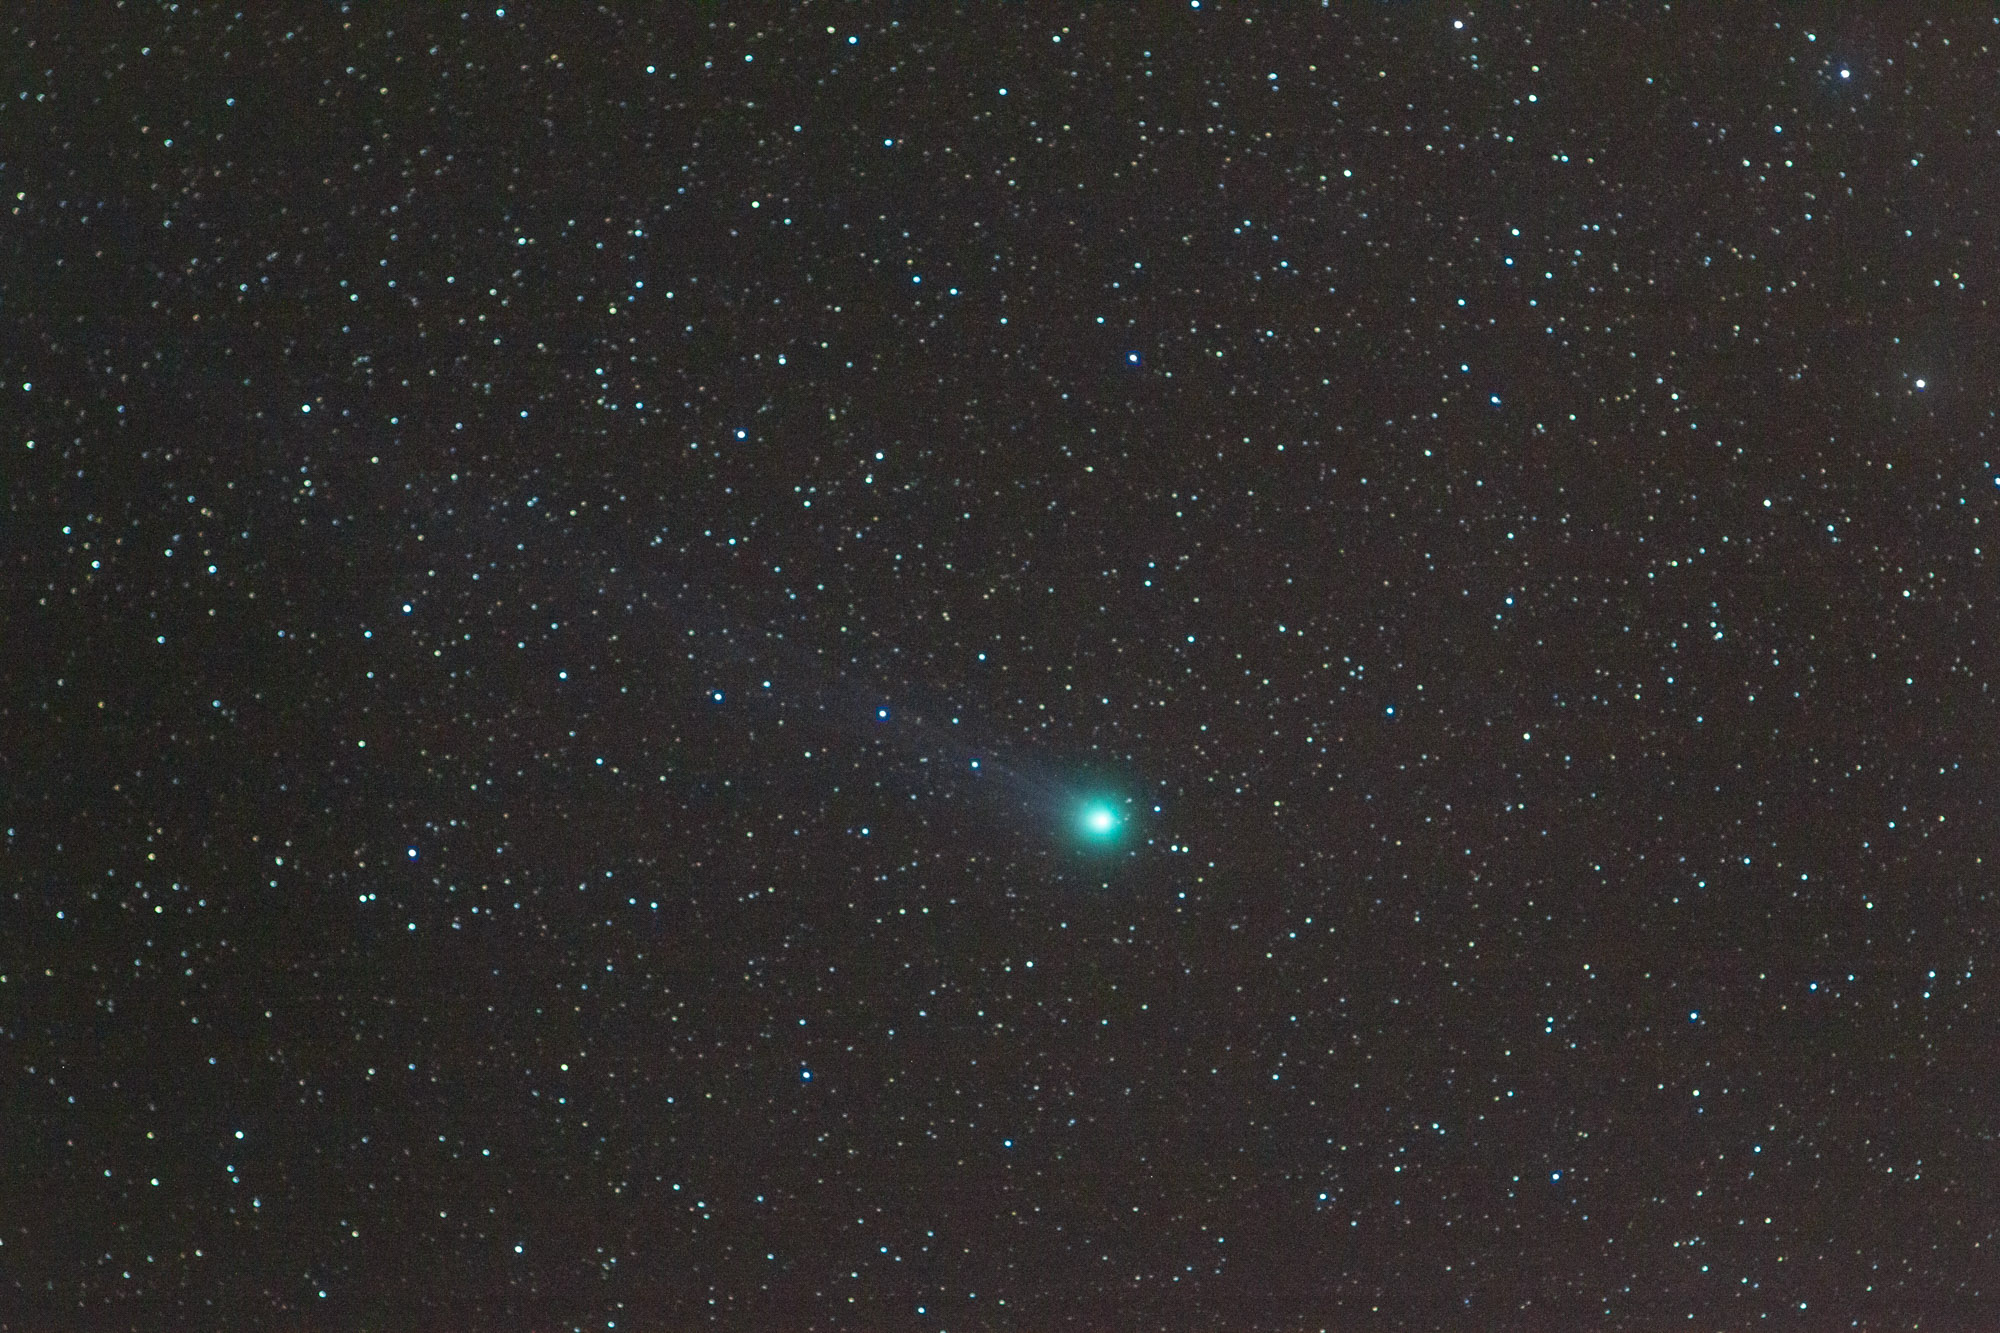 c2014 Q2 Lovejoy (DSLR)